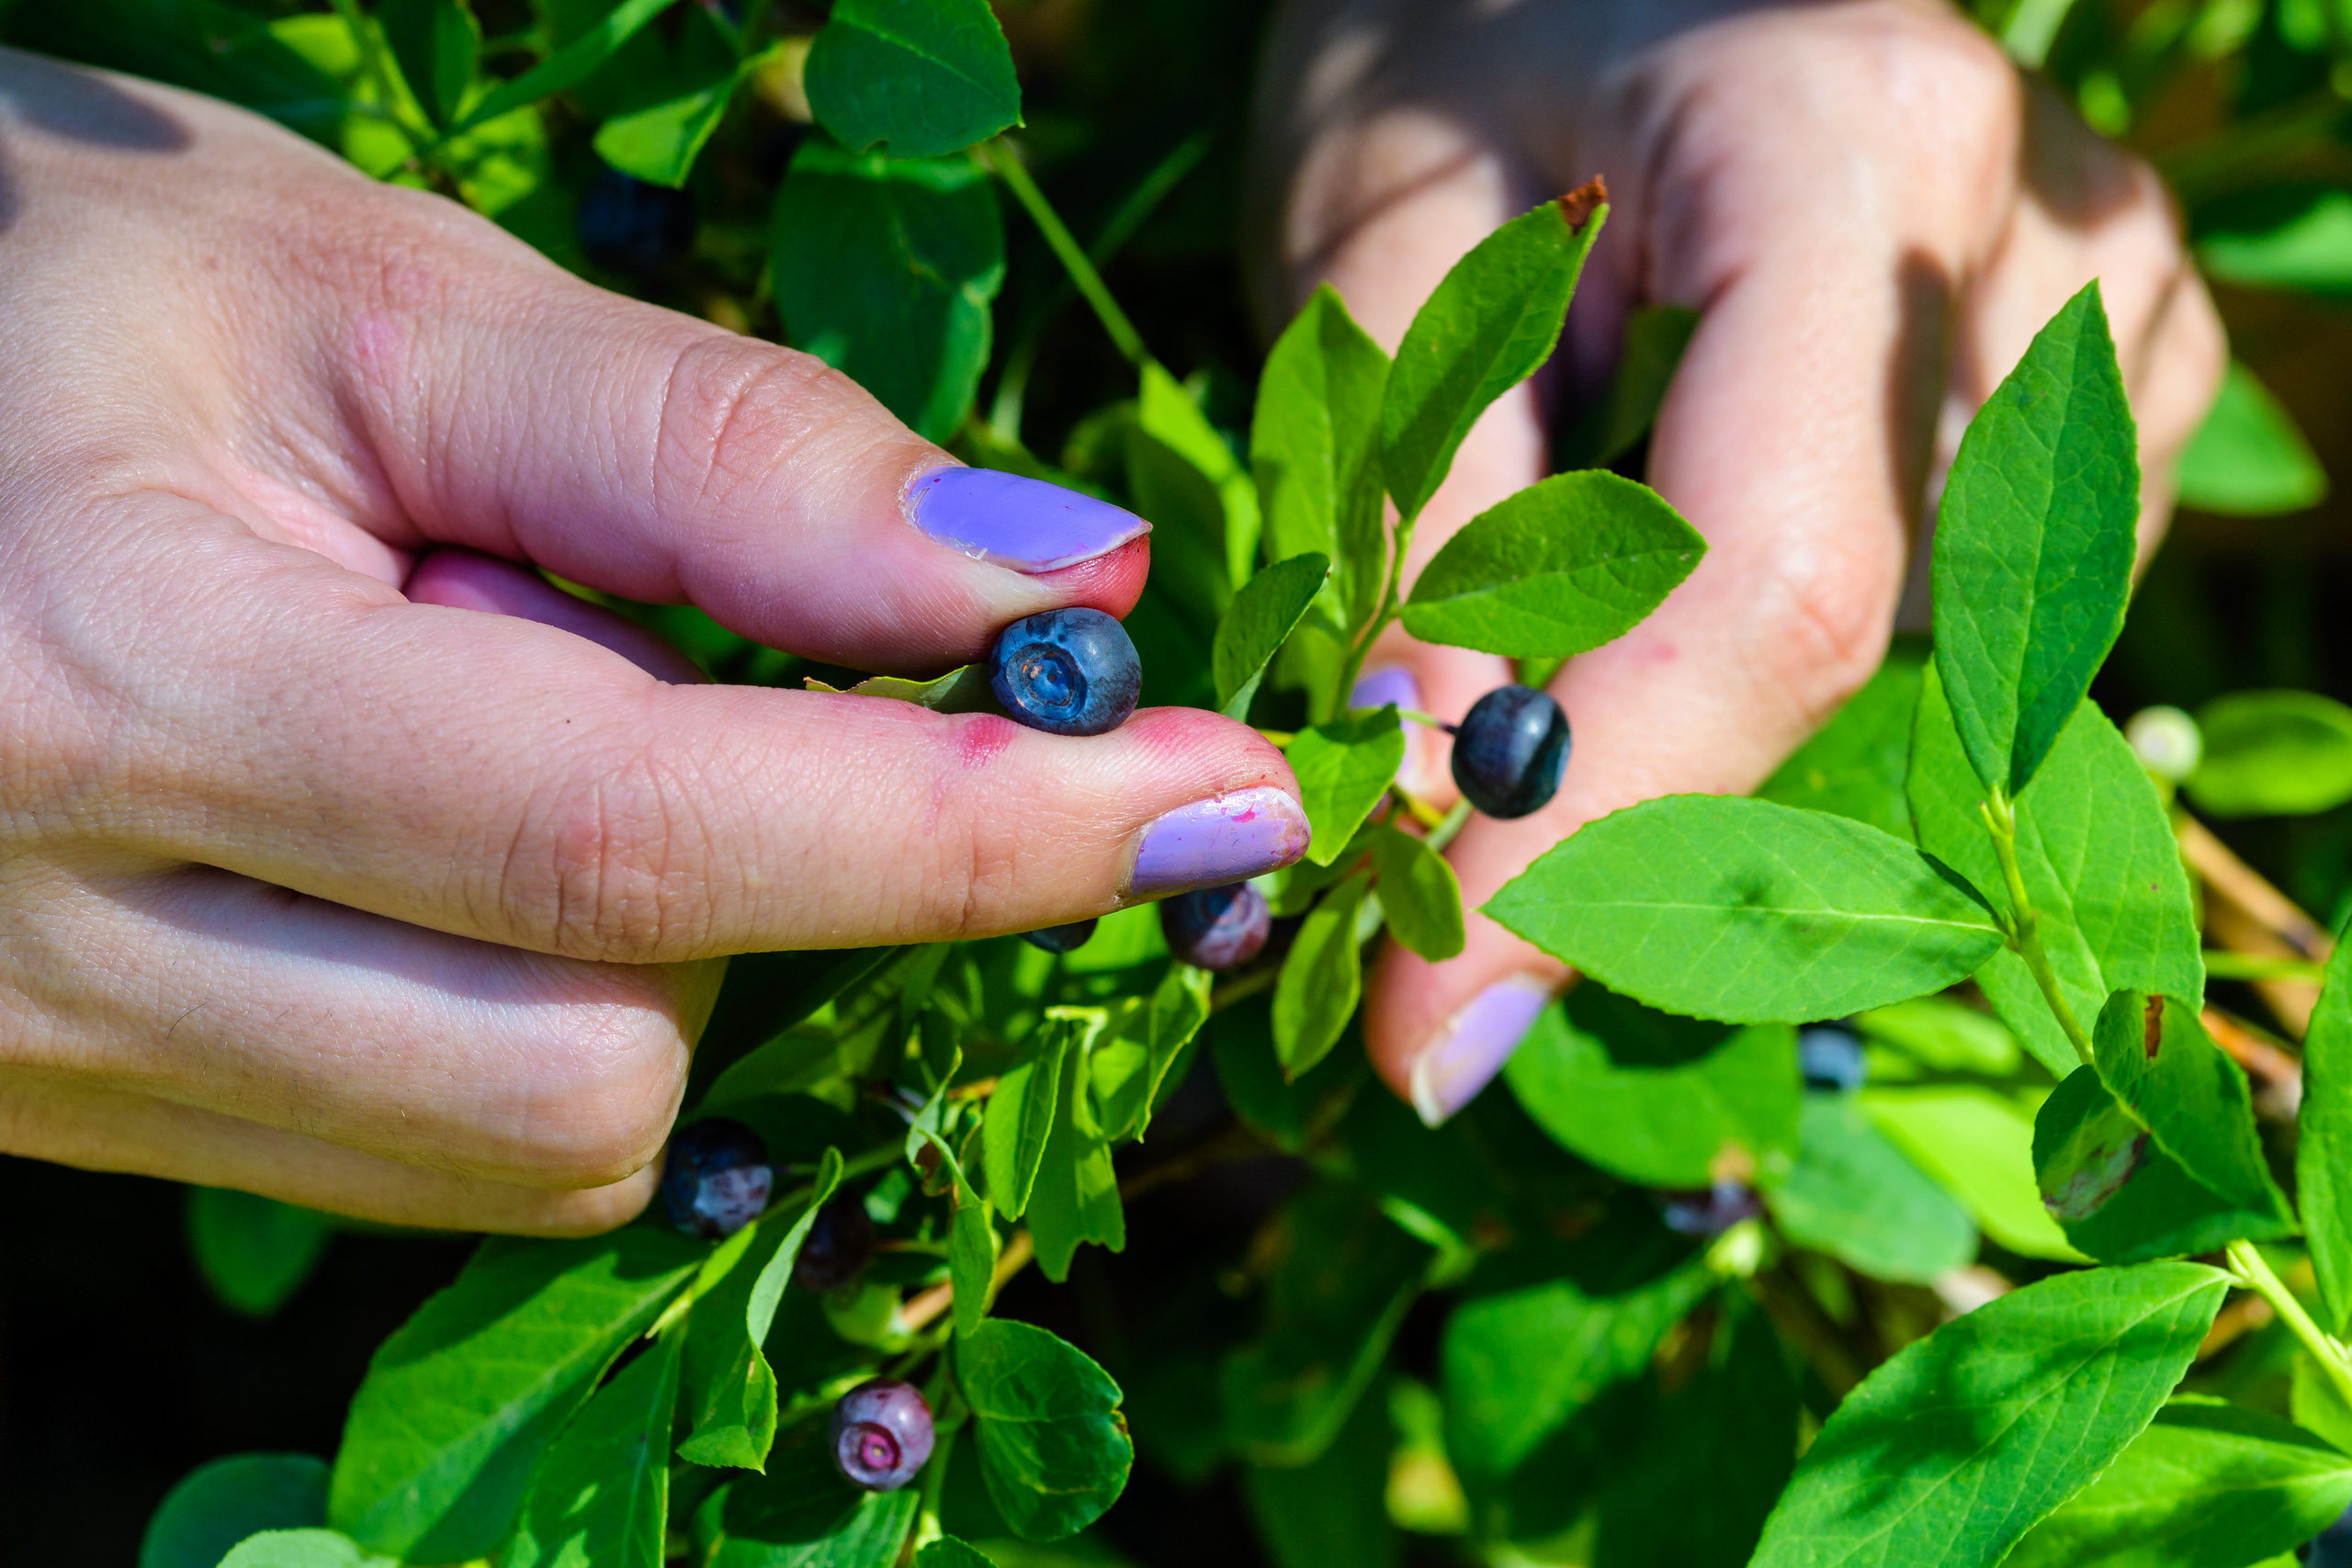 Picking the huckleberries